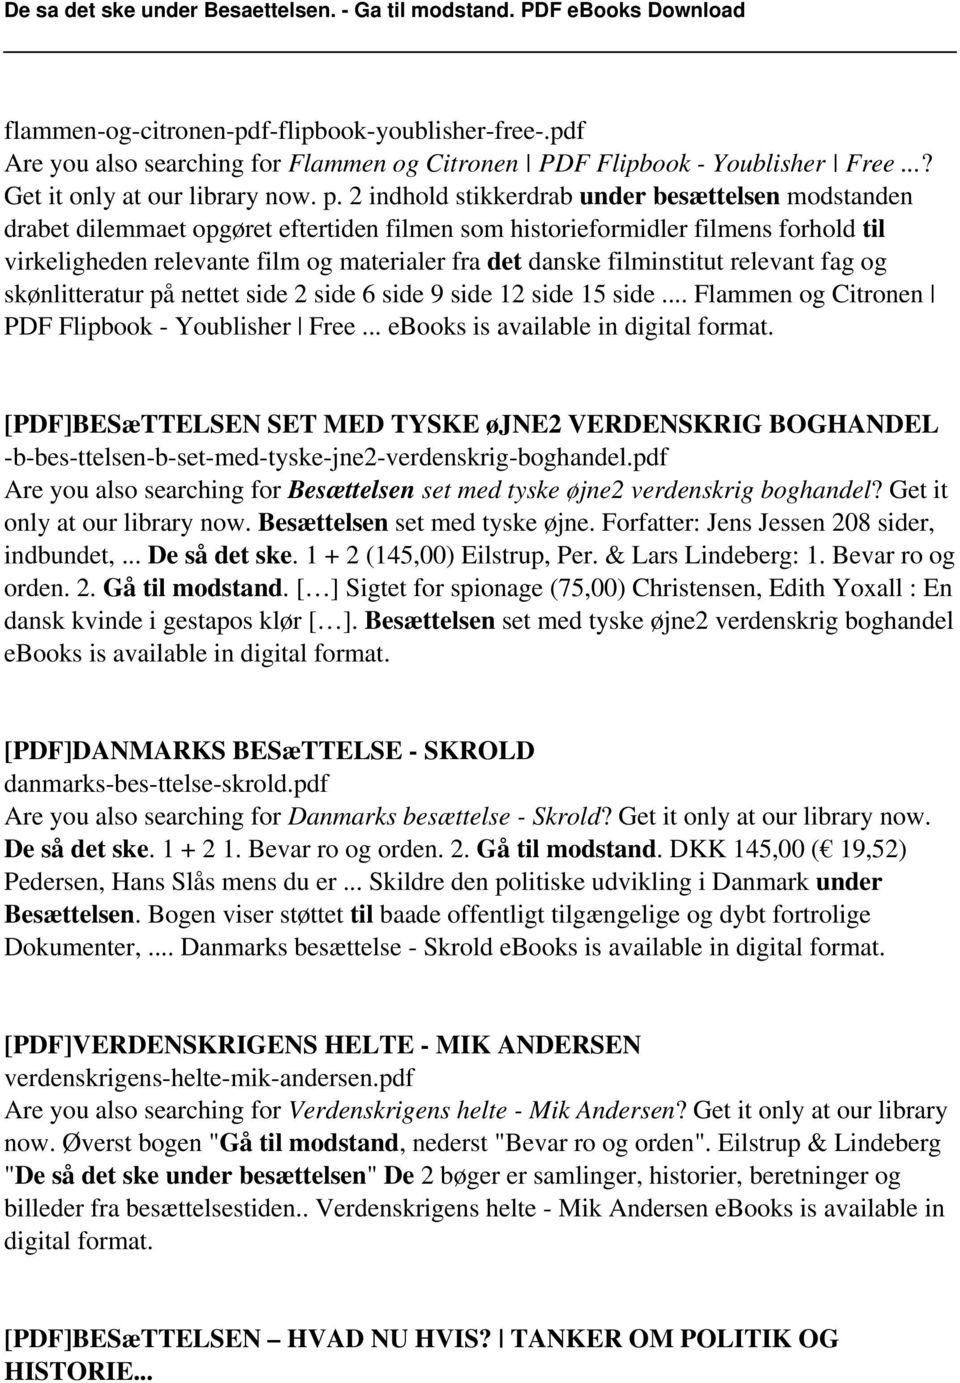 filminstitut relevant fag og skønlitteratur på nettet side 2 side 6 side 9 side 12 side 15 side... Flammen og Citronen PDF Flipbook - Youblisher Free... ebooks is available in digital format.